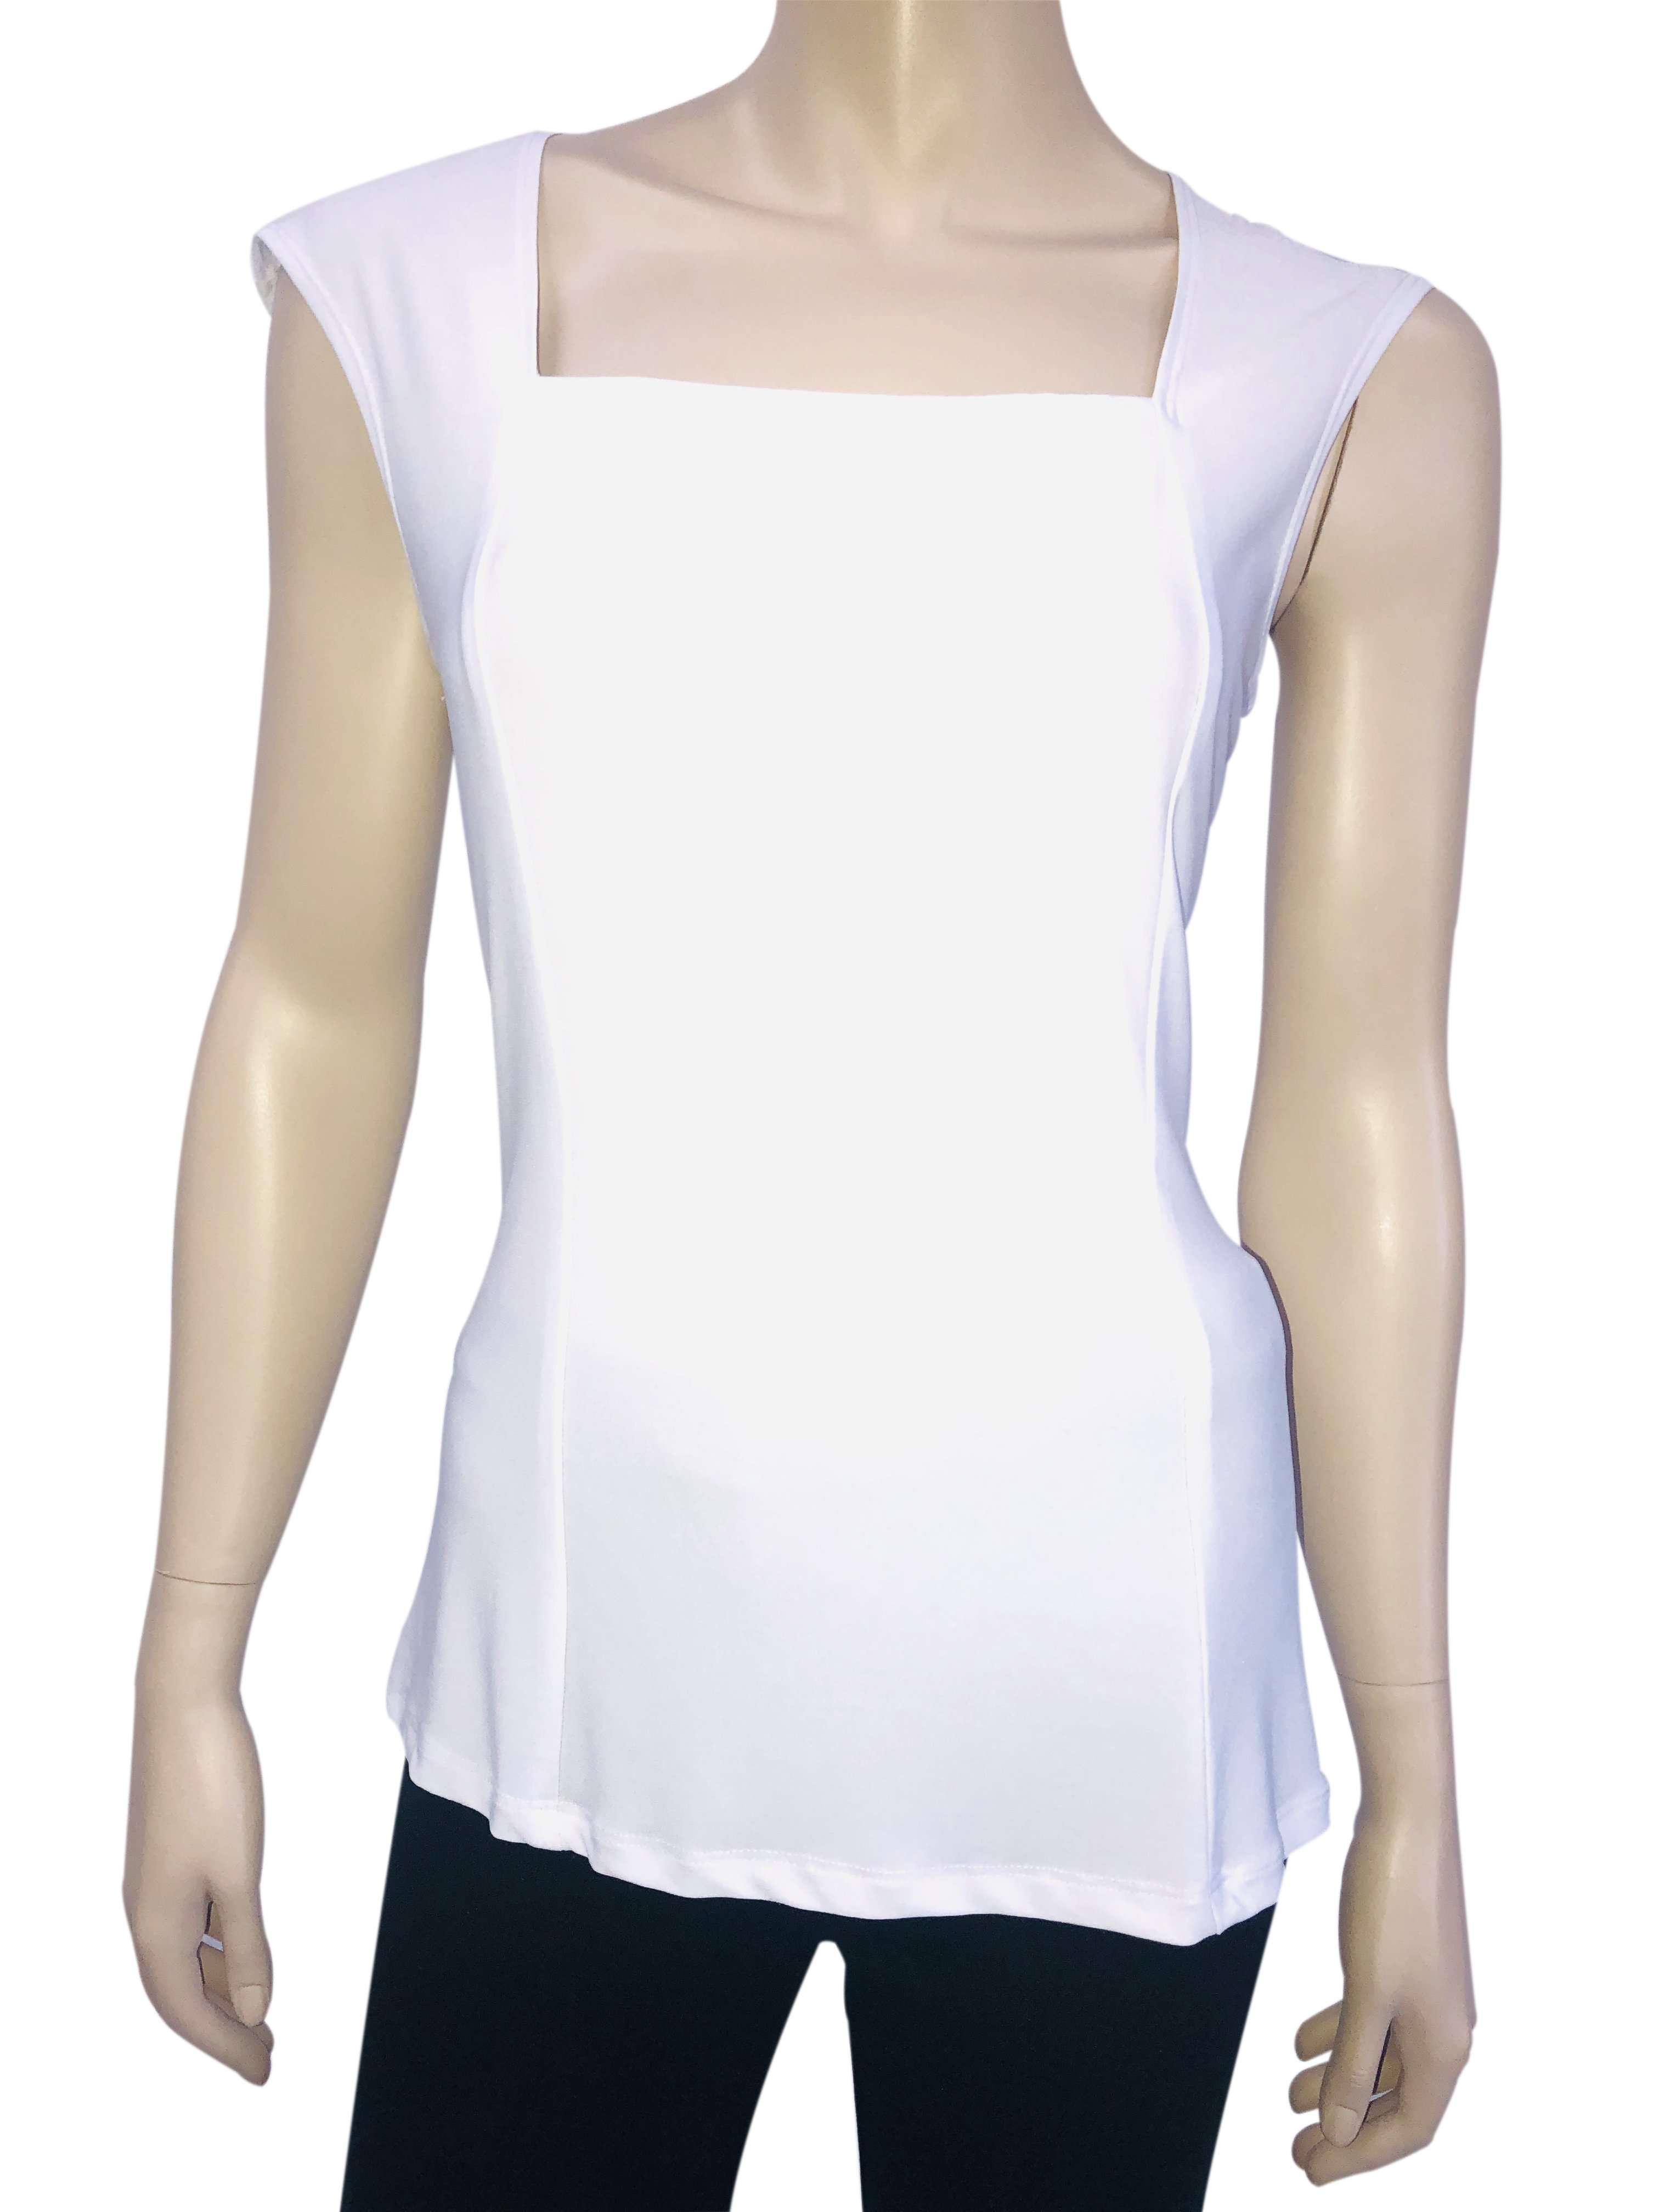 Womens Tank Tops Canada | White Tank Top | Tops On Sale | Ym Style - Yvonne Marie